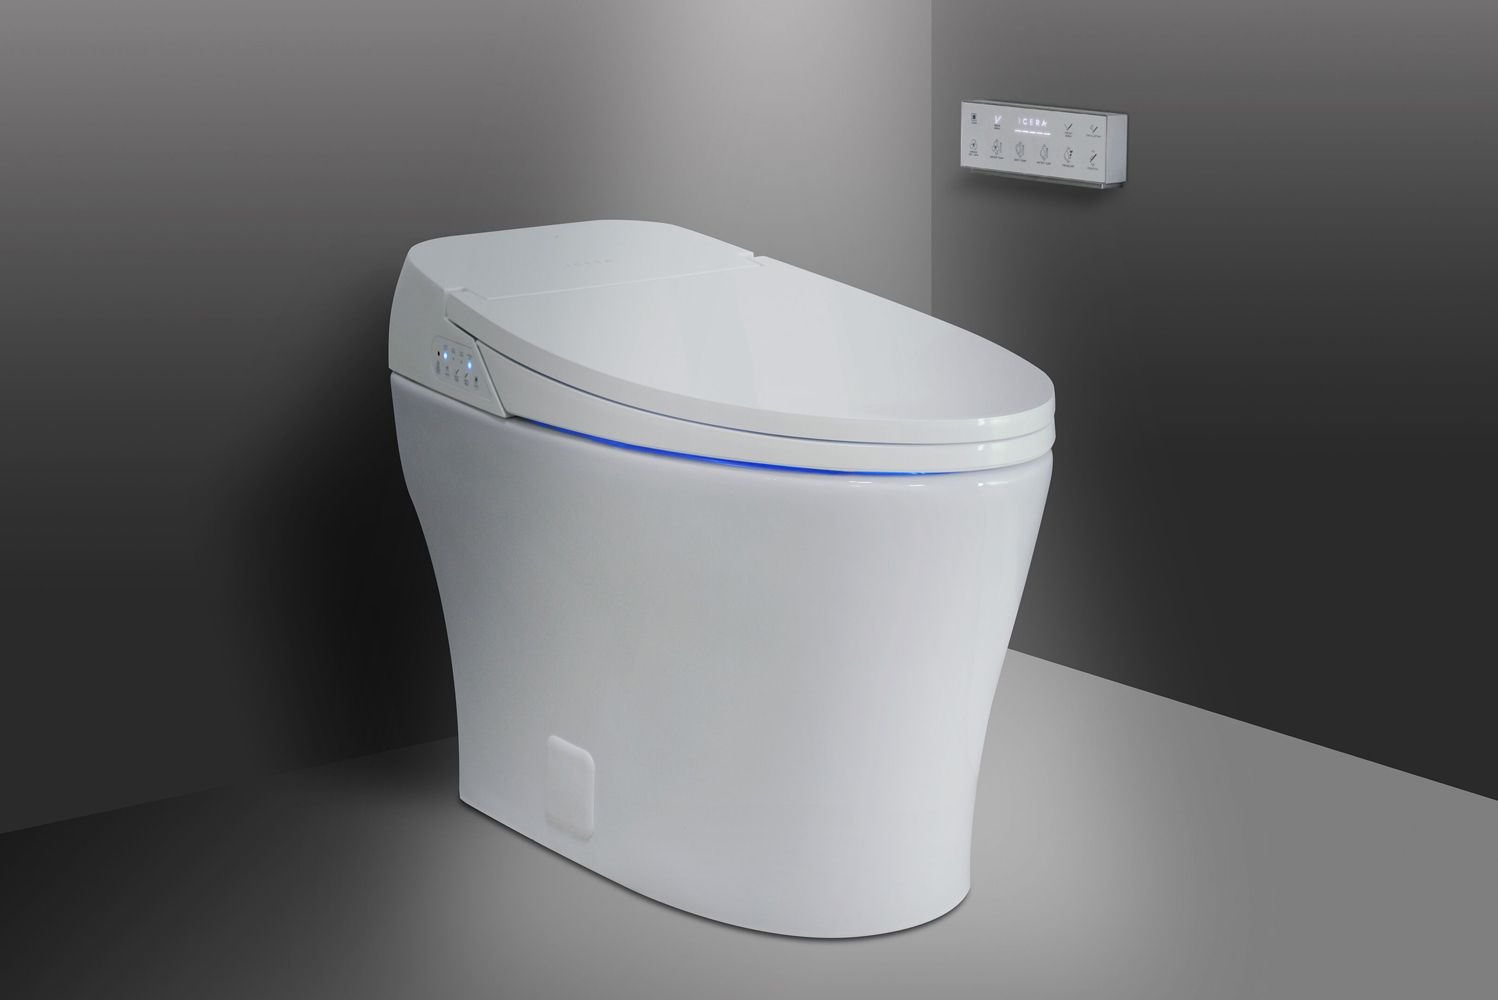 The Muse iWash system conserves floor space with its smart two-in-one design.